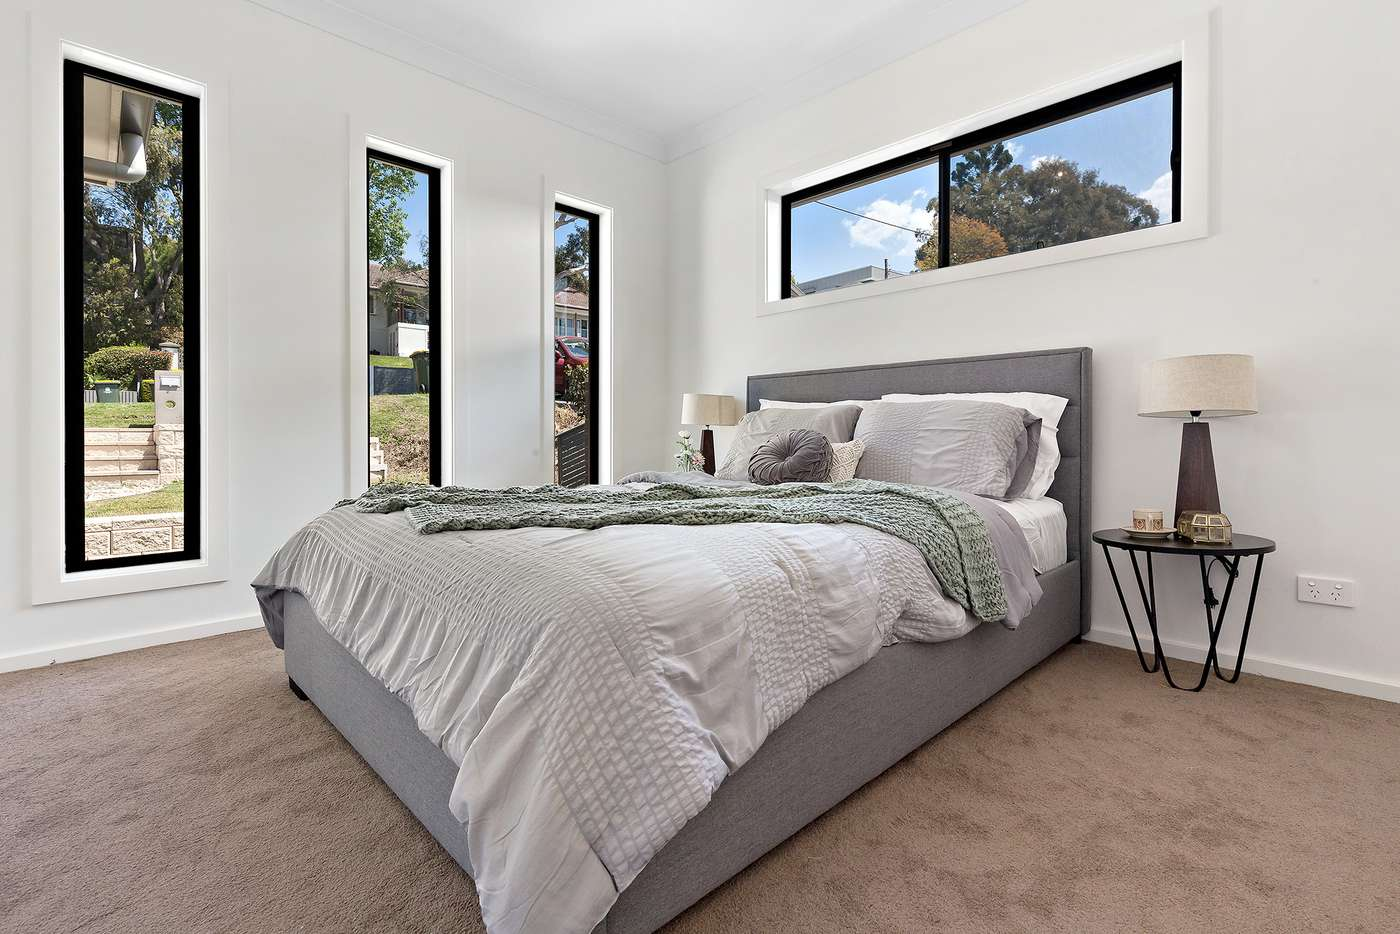 Fifth view of Homely house listing, 1/45 Curzon Road, New Lambton NSW 2305